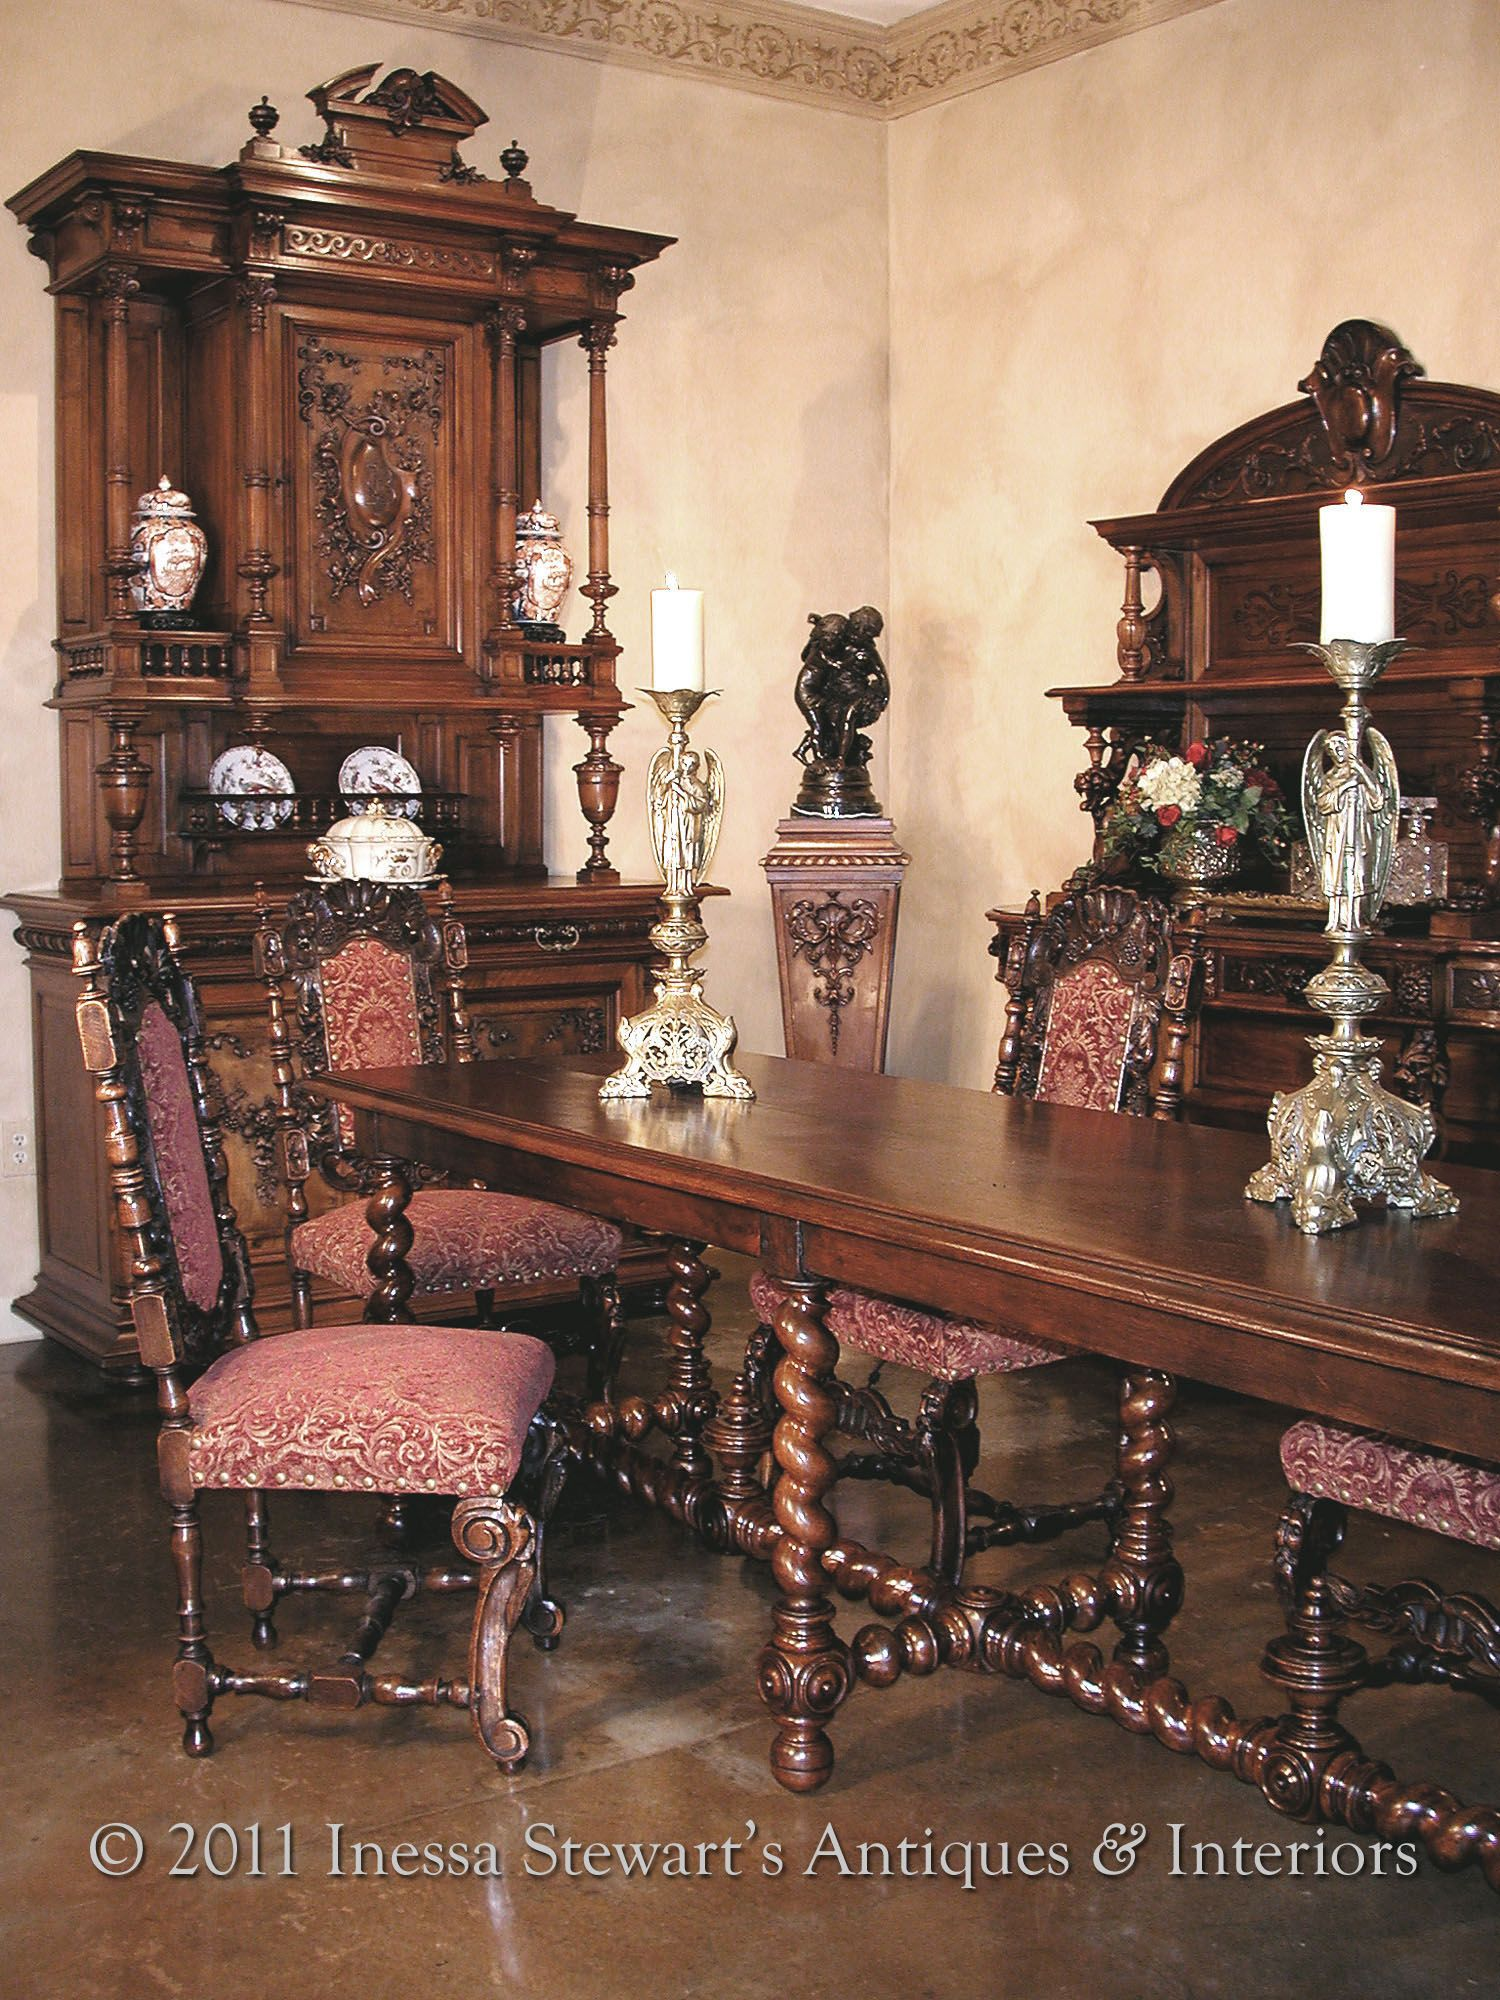 French victorian bedroom furniture - Antique Renaissance Style Dining Room To Most Of Us Antique French Furniture Means Furnishings